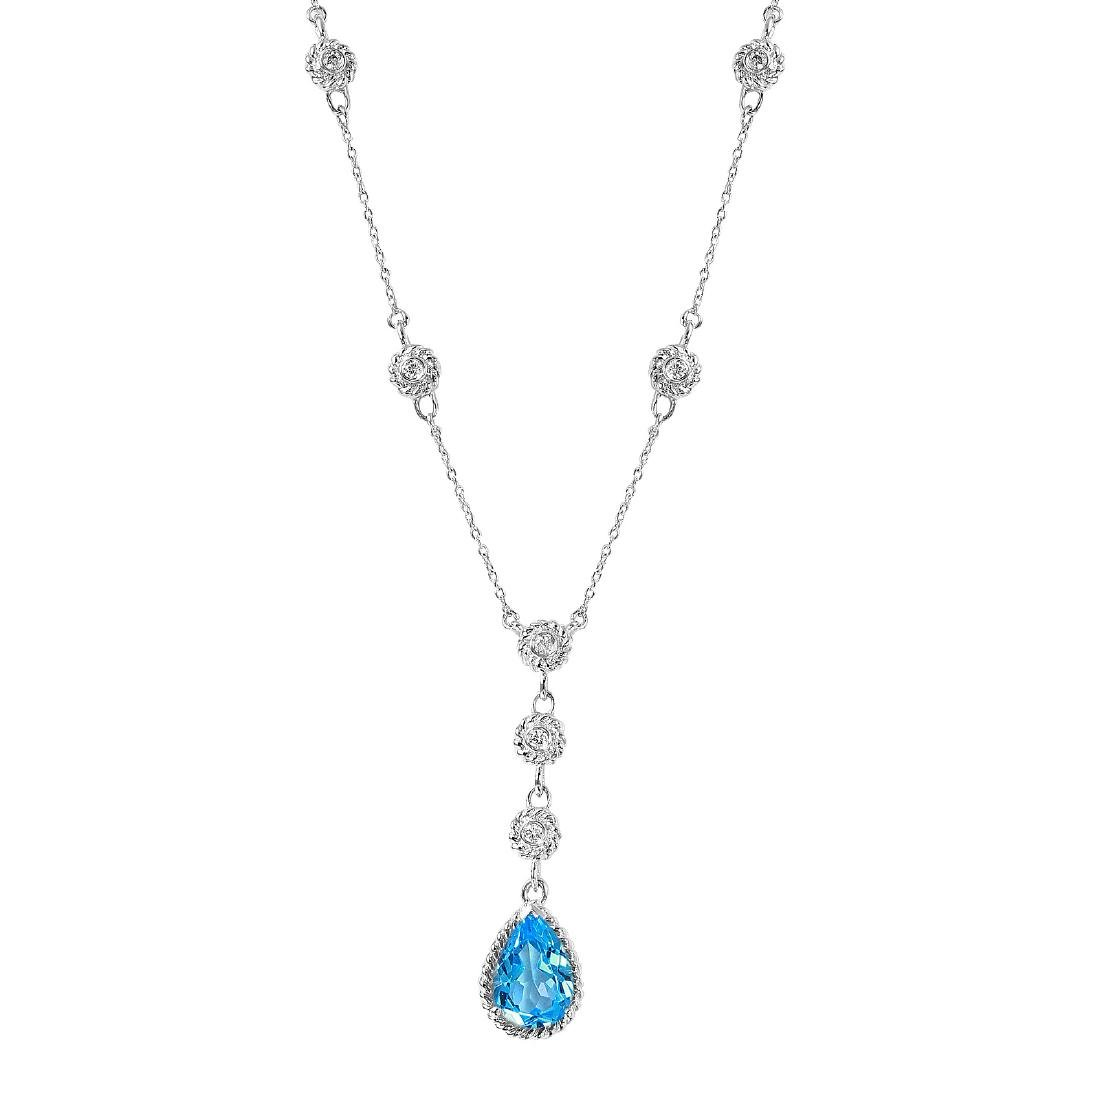 14KT White Gold 2.14ctw Topaz Diamond Necklace Length